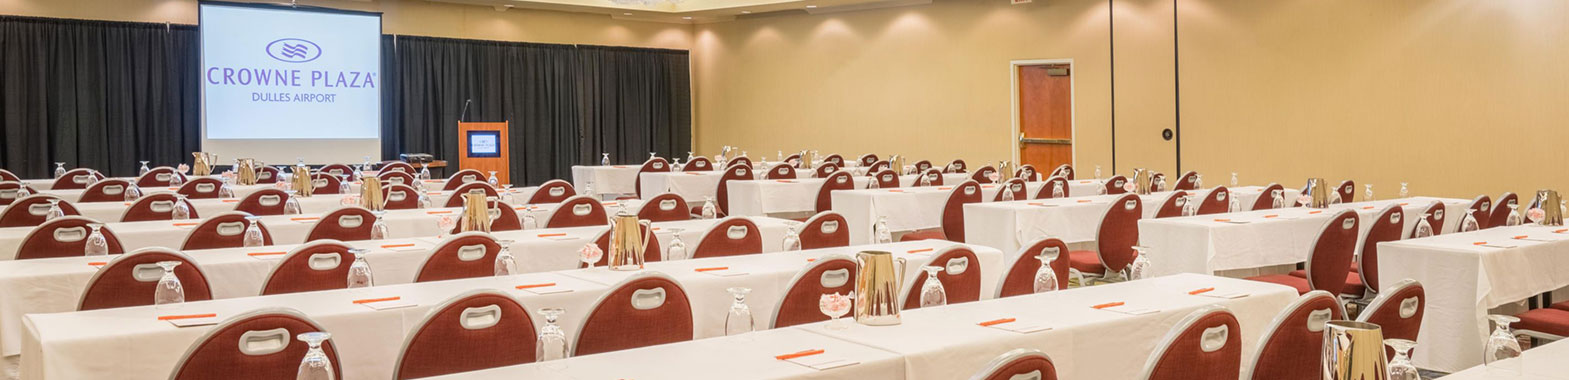 Getting More Out of Your Meeting Near Dulles Airport